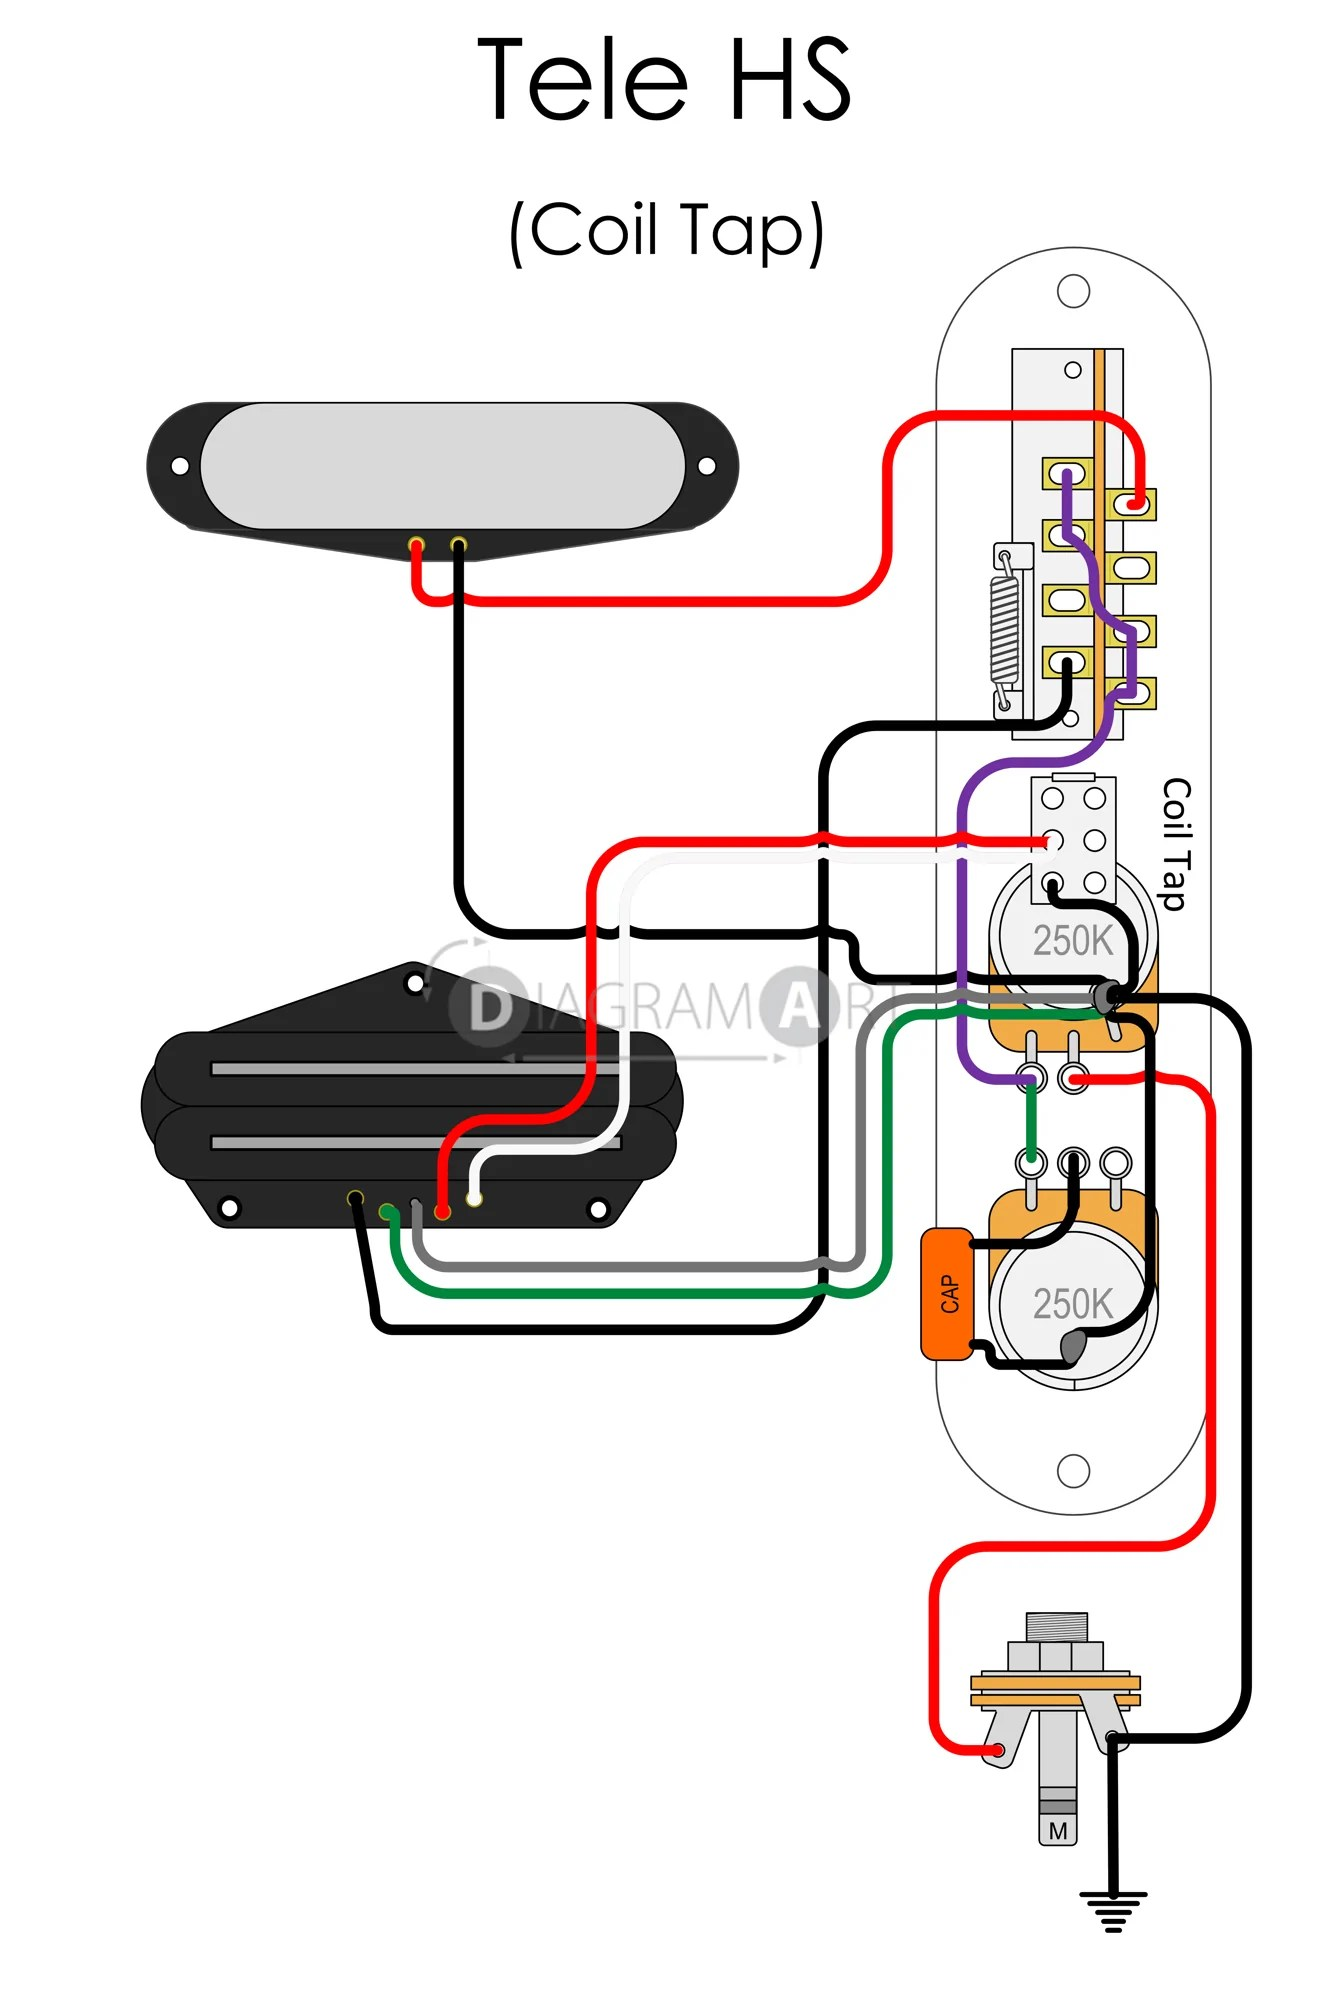 hight resolution of electric guitar wiring tele hs coil tap electric circuit fender duo sonic hs wiring diagram hs wiring diagram